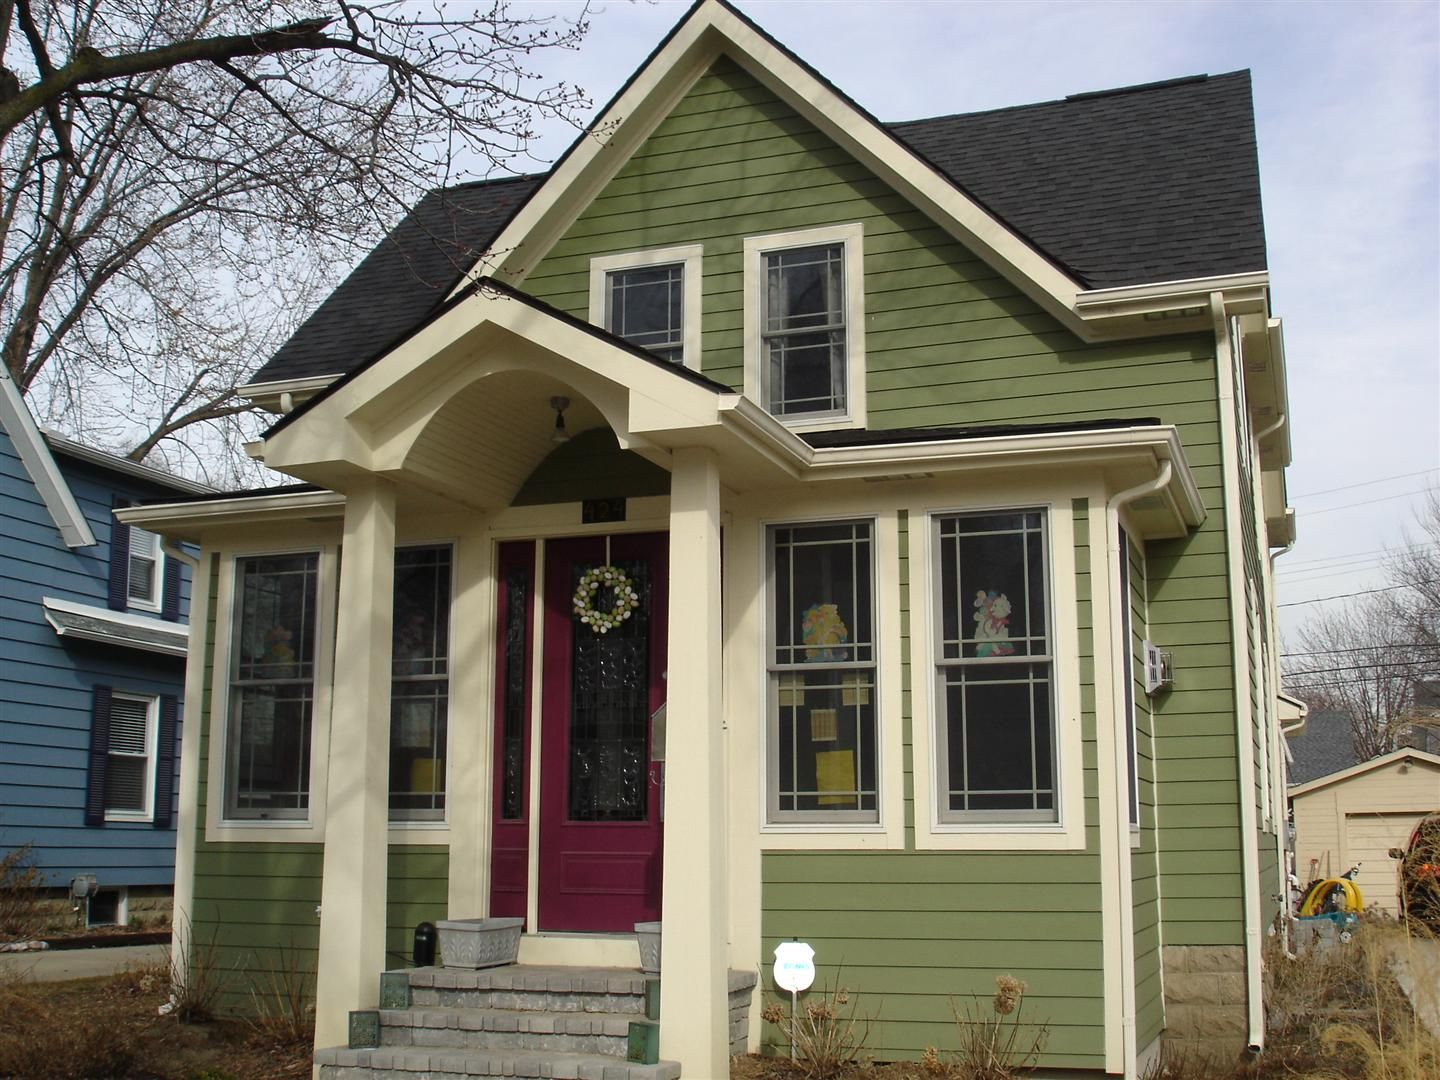 8 popular home upgrades and how much they cost steel - Cost to paint house exterior trim ...